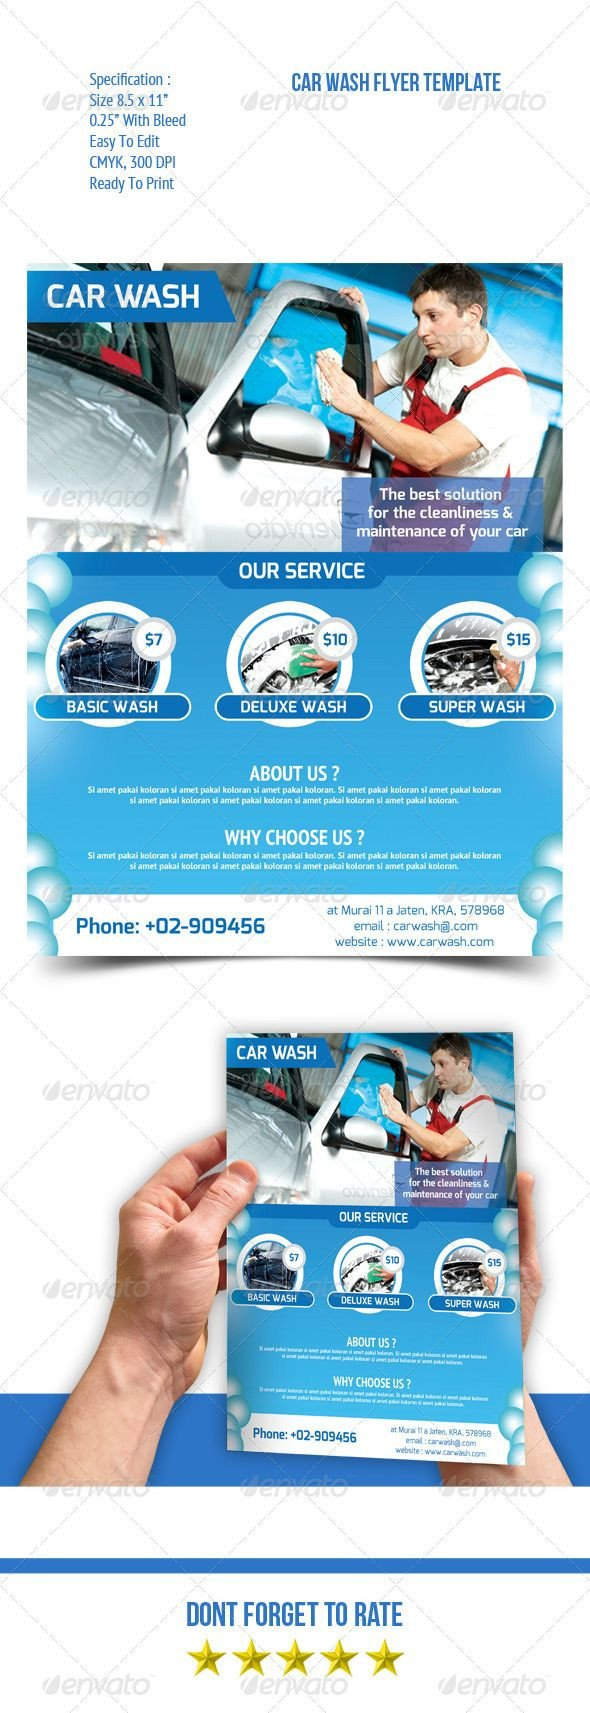 Car Wash Flyer Template Car Wash Flyer